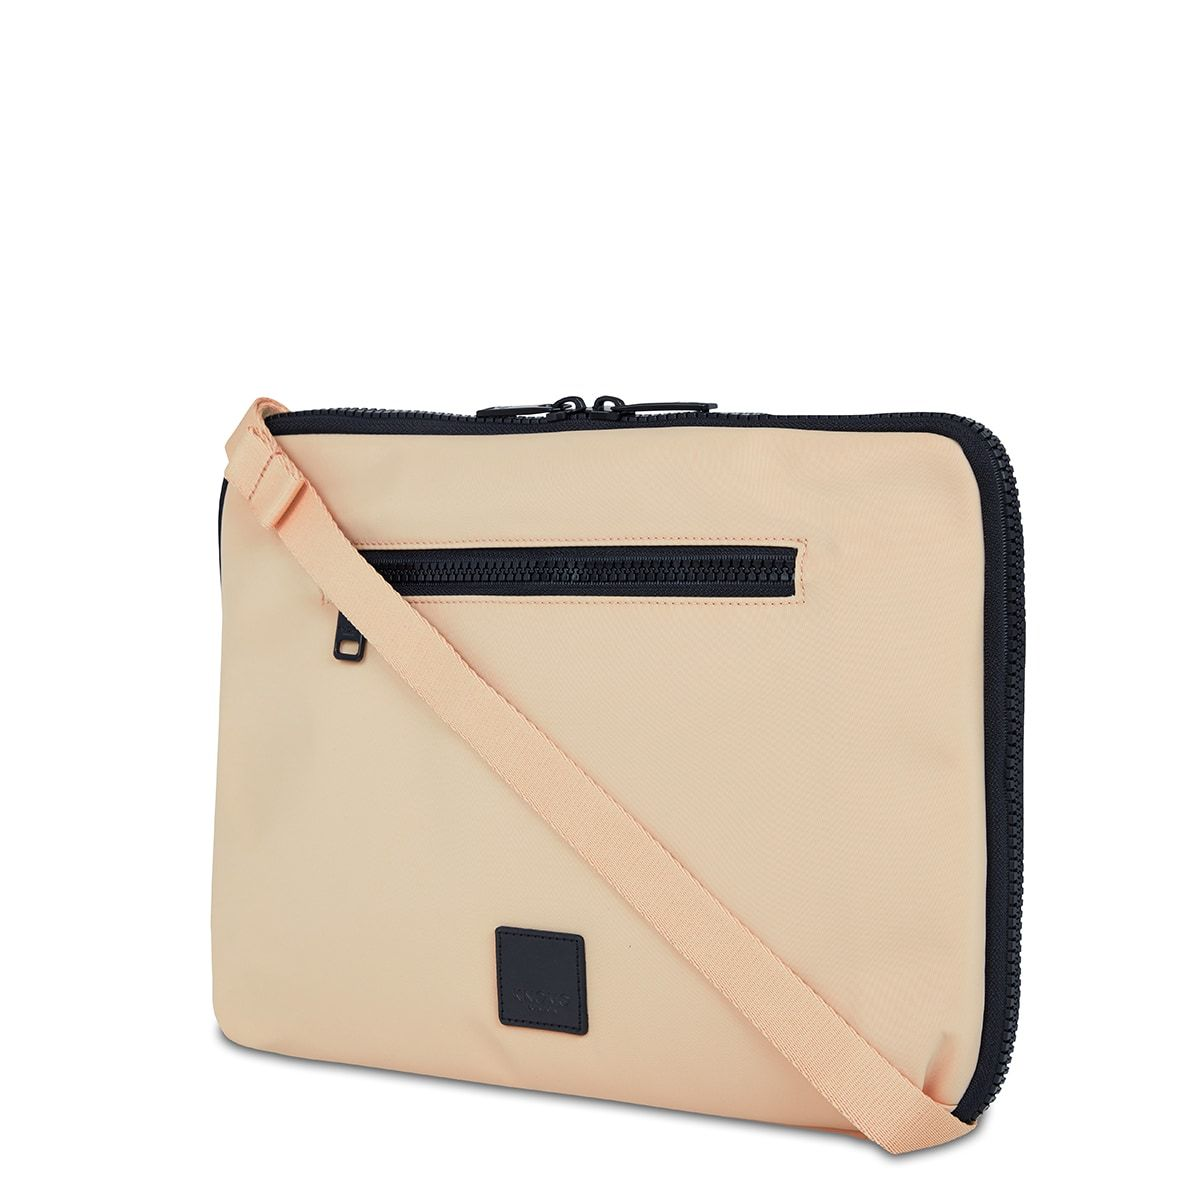 "KNOMO Fulham Knomad X-Body Organiser Tech Organiser Three Quarter View With Strap 13"" -  Trench Beige 